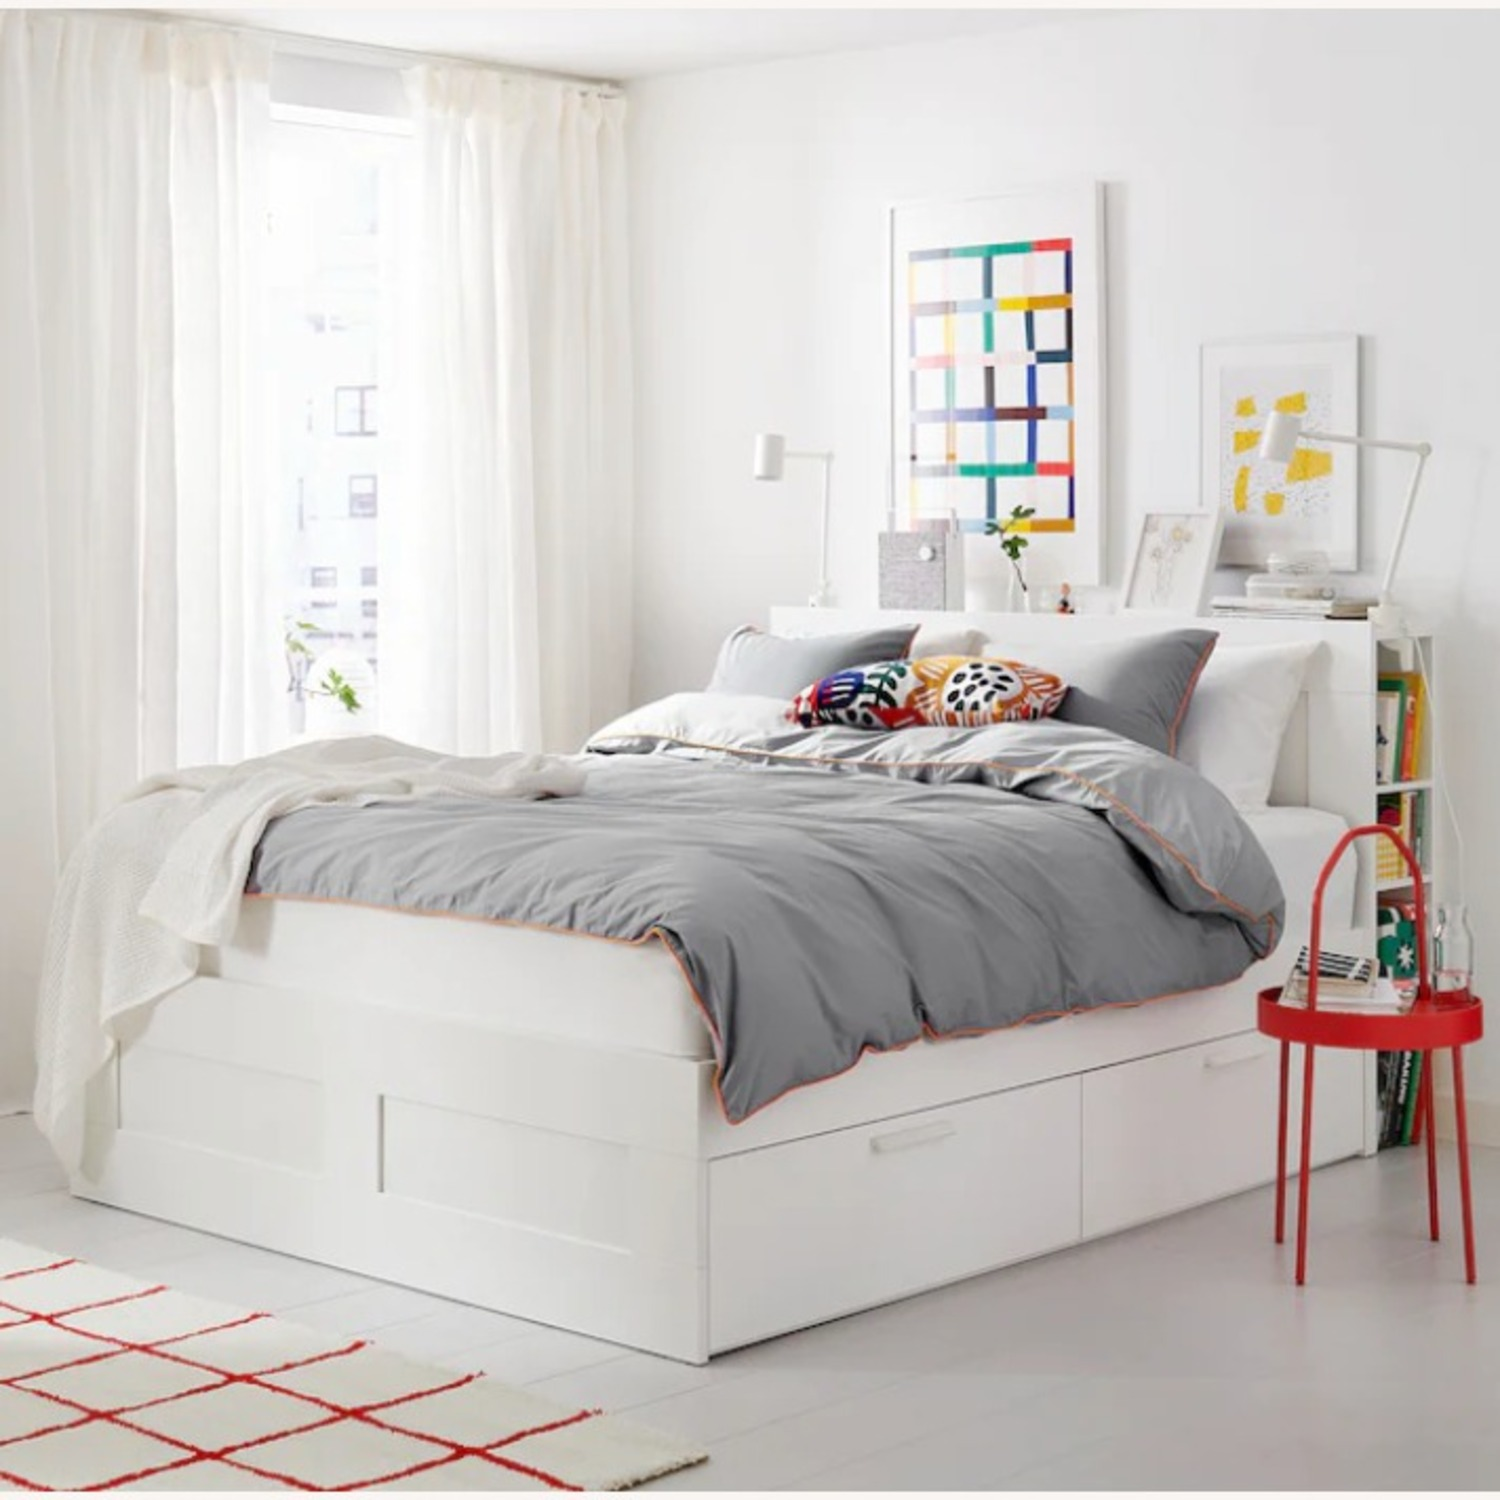 IKEA Bed Frame with Storage - image-5